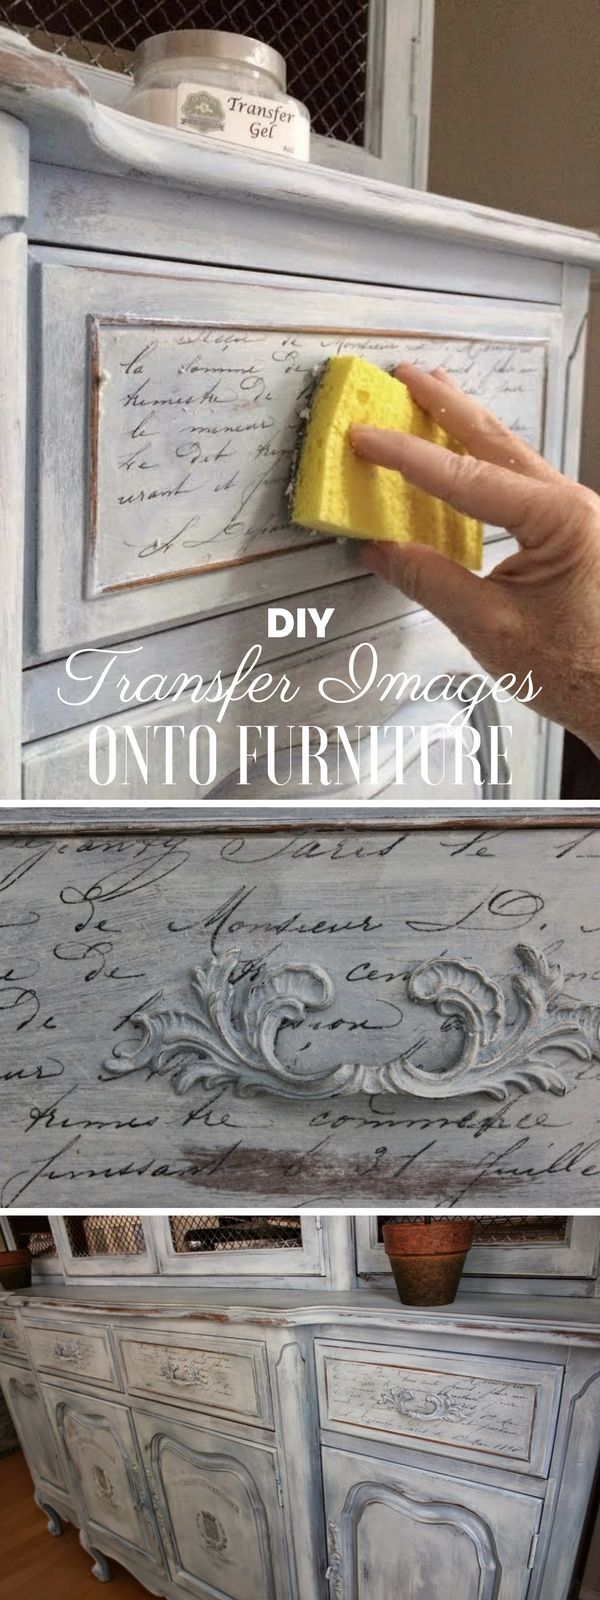 Check out the tutorial: #DIY Transfer Images onto Furniture /istandarddesign/